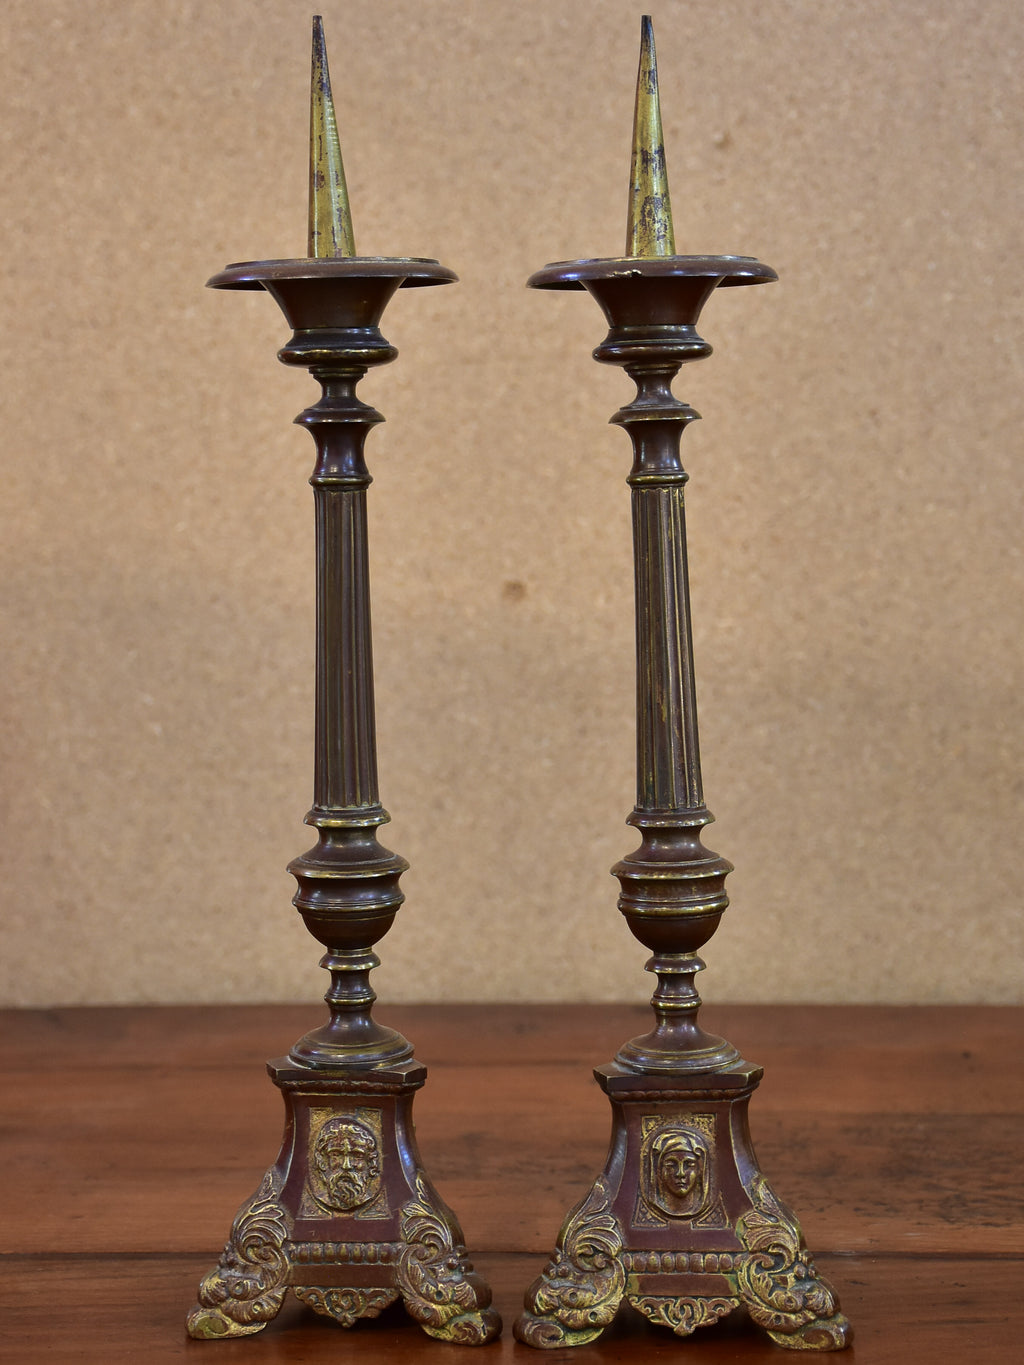 Pair of 19th century French church candlesticks